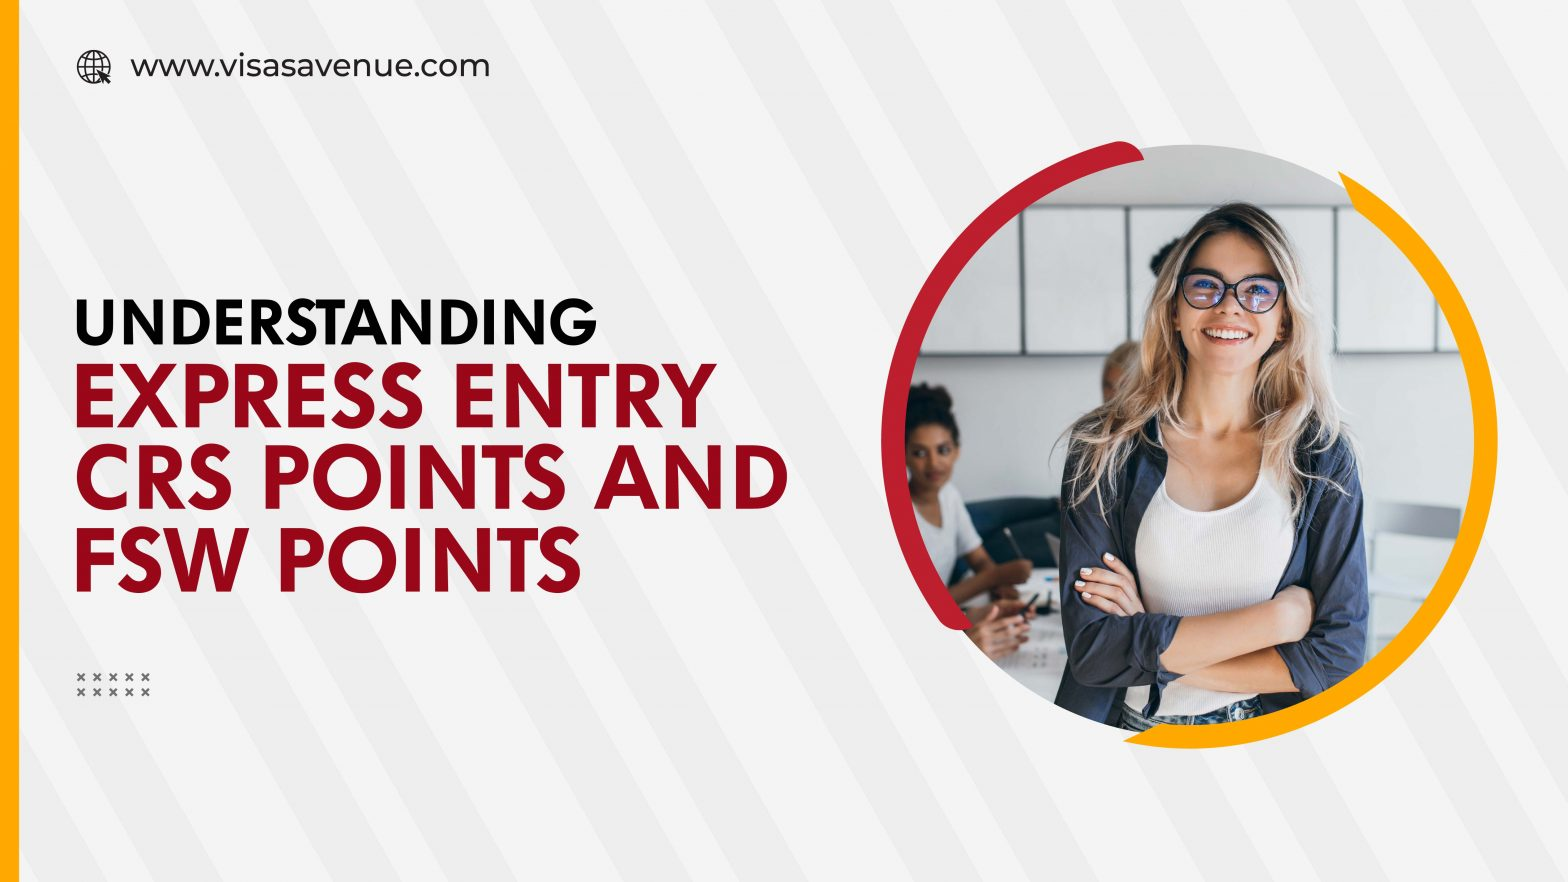 Understanding Express Entry CRS points and FSW points